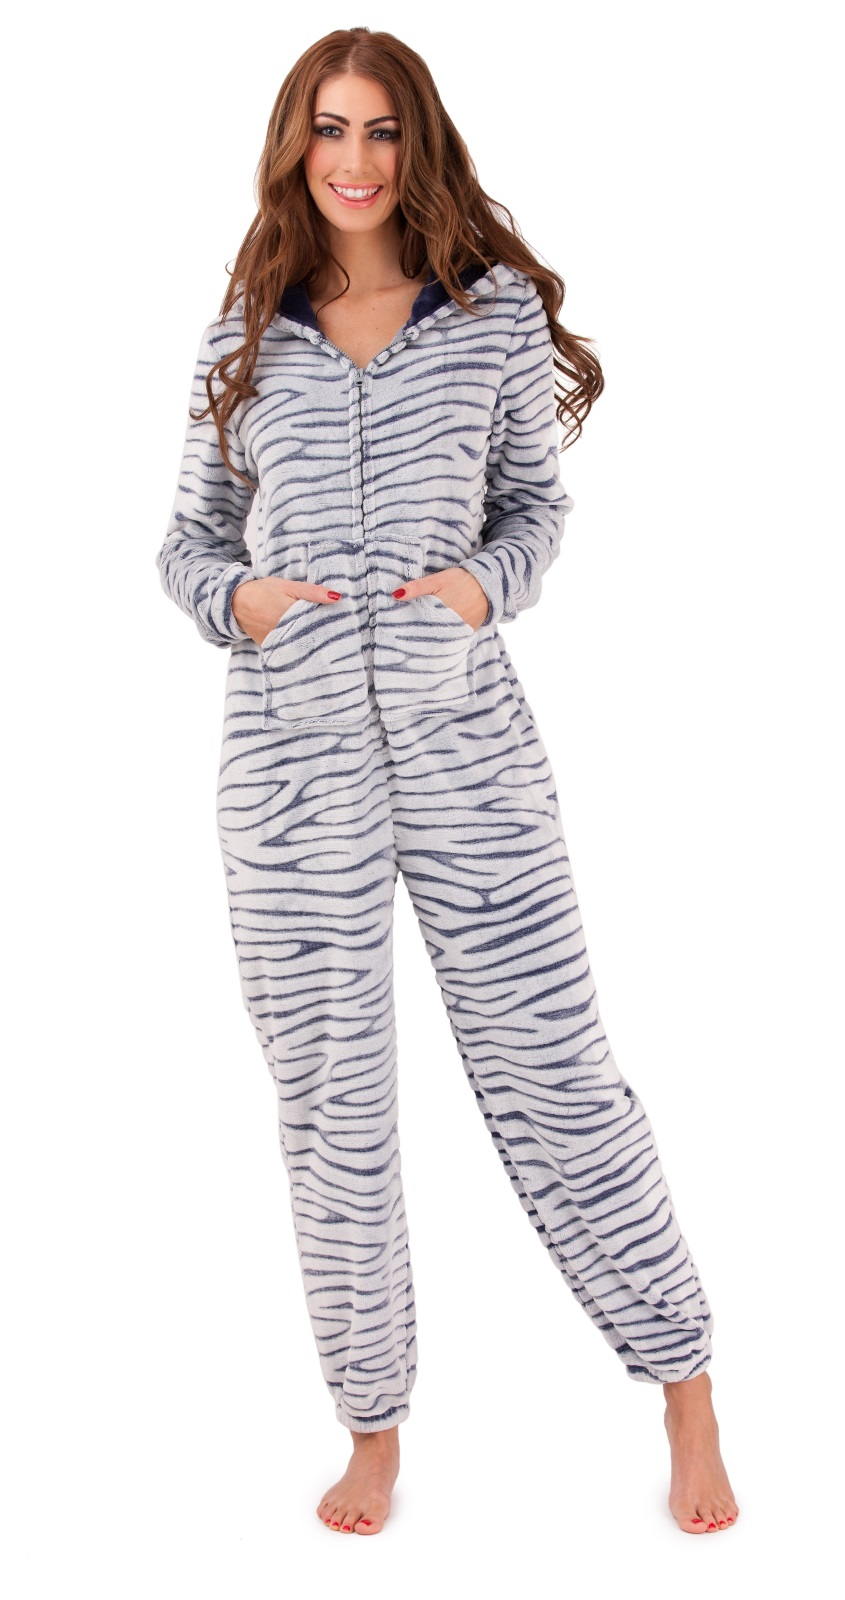 Find great deals on eBay for All in One Pyjamas in Sleepwear and Robes for Adult Women. Shop with confidence. Find great deals on eBay for All in One Pyjamas in Sleepwear and Robes for Adult Women. Womens PLAYBOY Pyjamas All In One Jumpsuit Playsuit Nightwear UK size 12 NEW. $ Buy It Now. Colour - Blue.